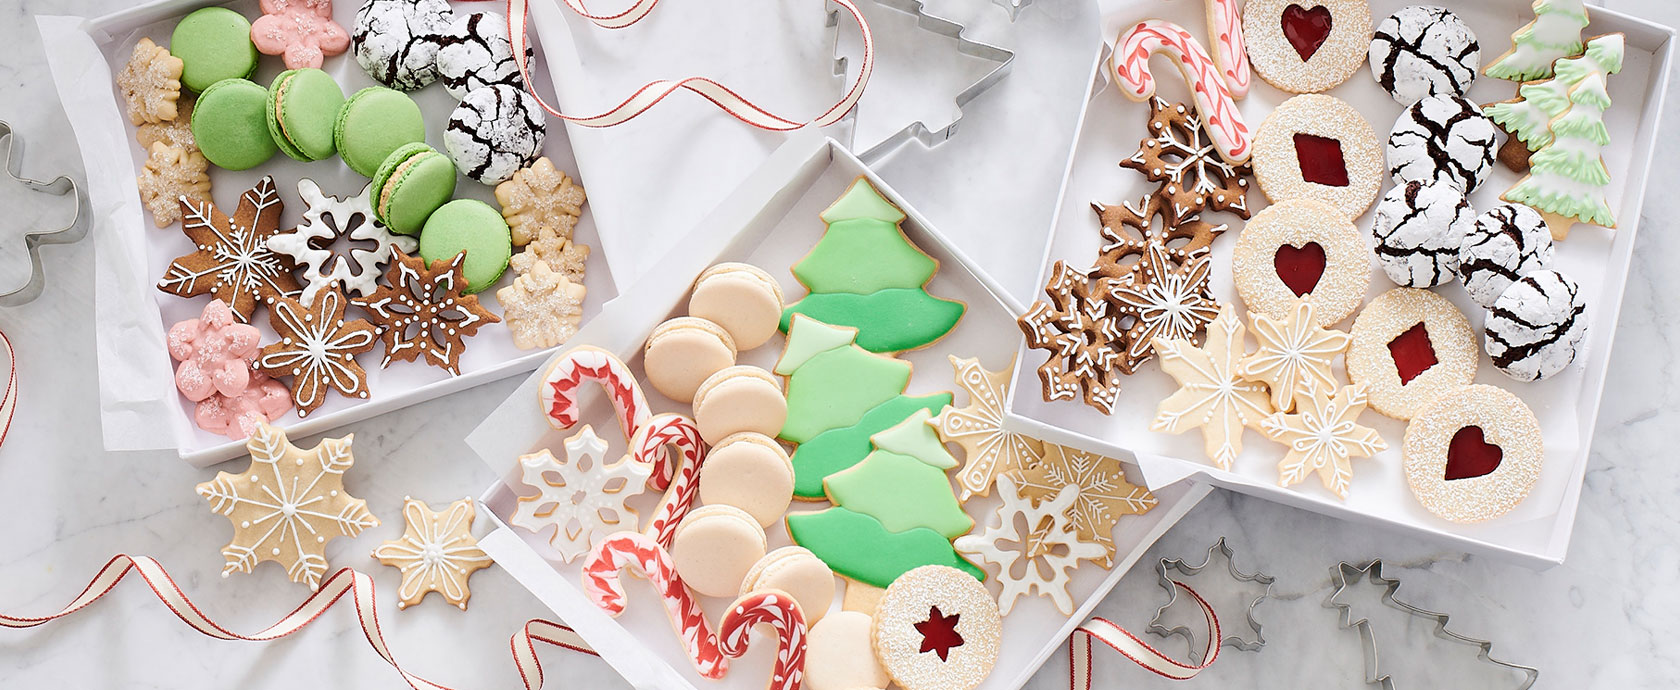 decorated holiday cookies in white gift boxes